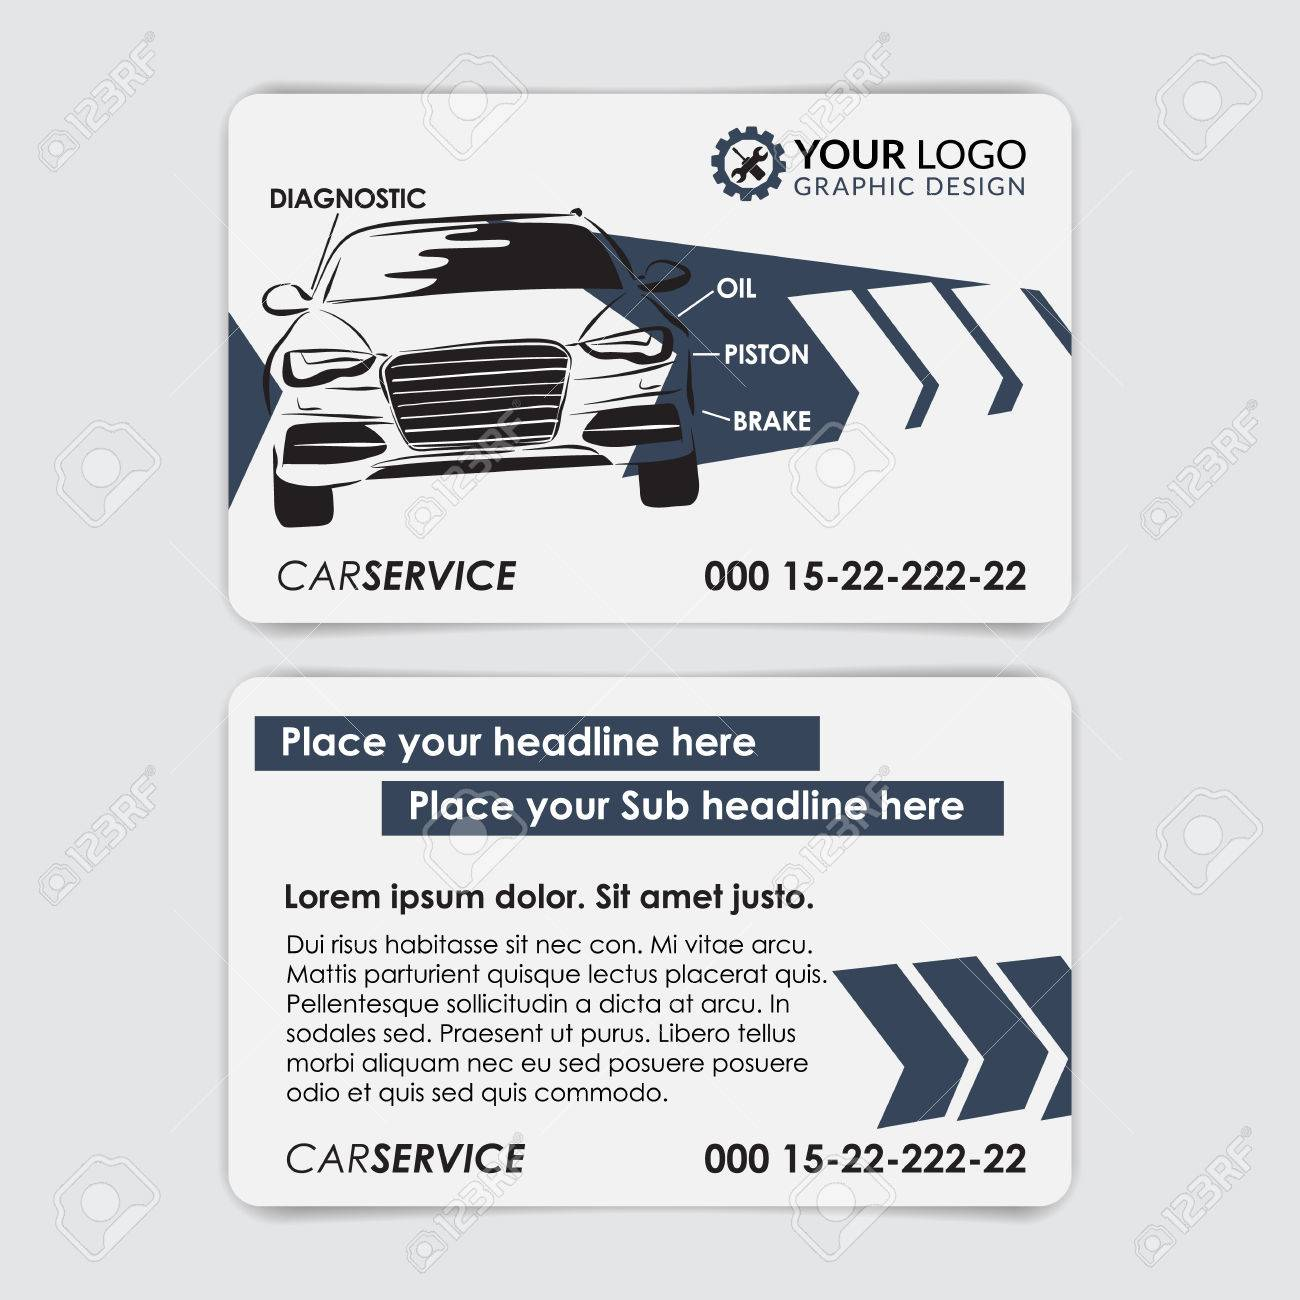 Service car business card template create your own business service car business card template create your own business cards vector illustration stock cheaphphosting Images